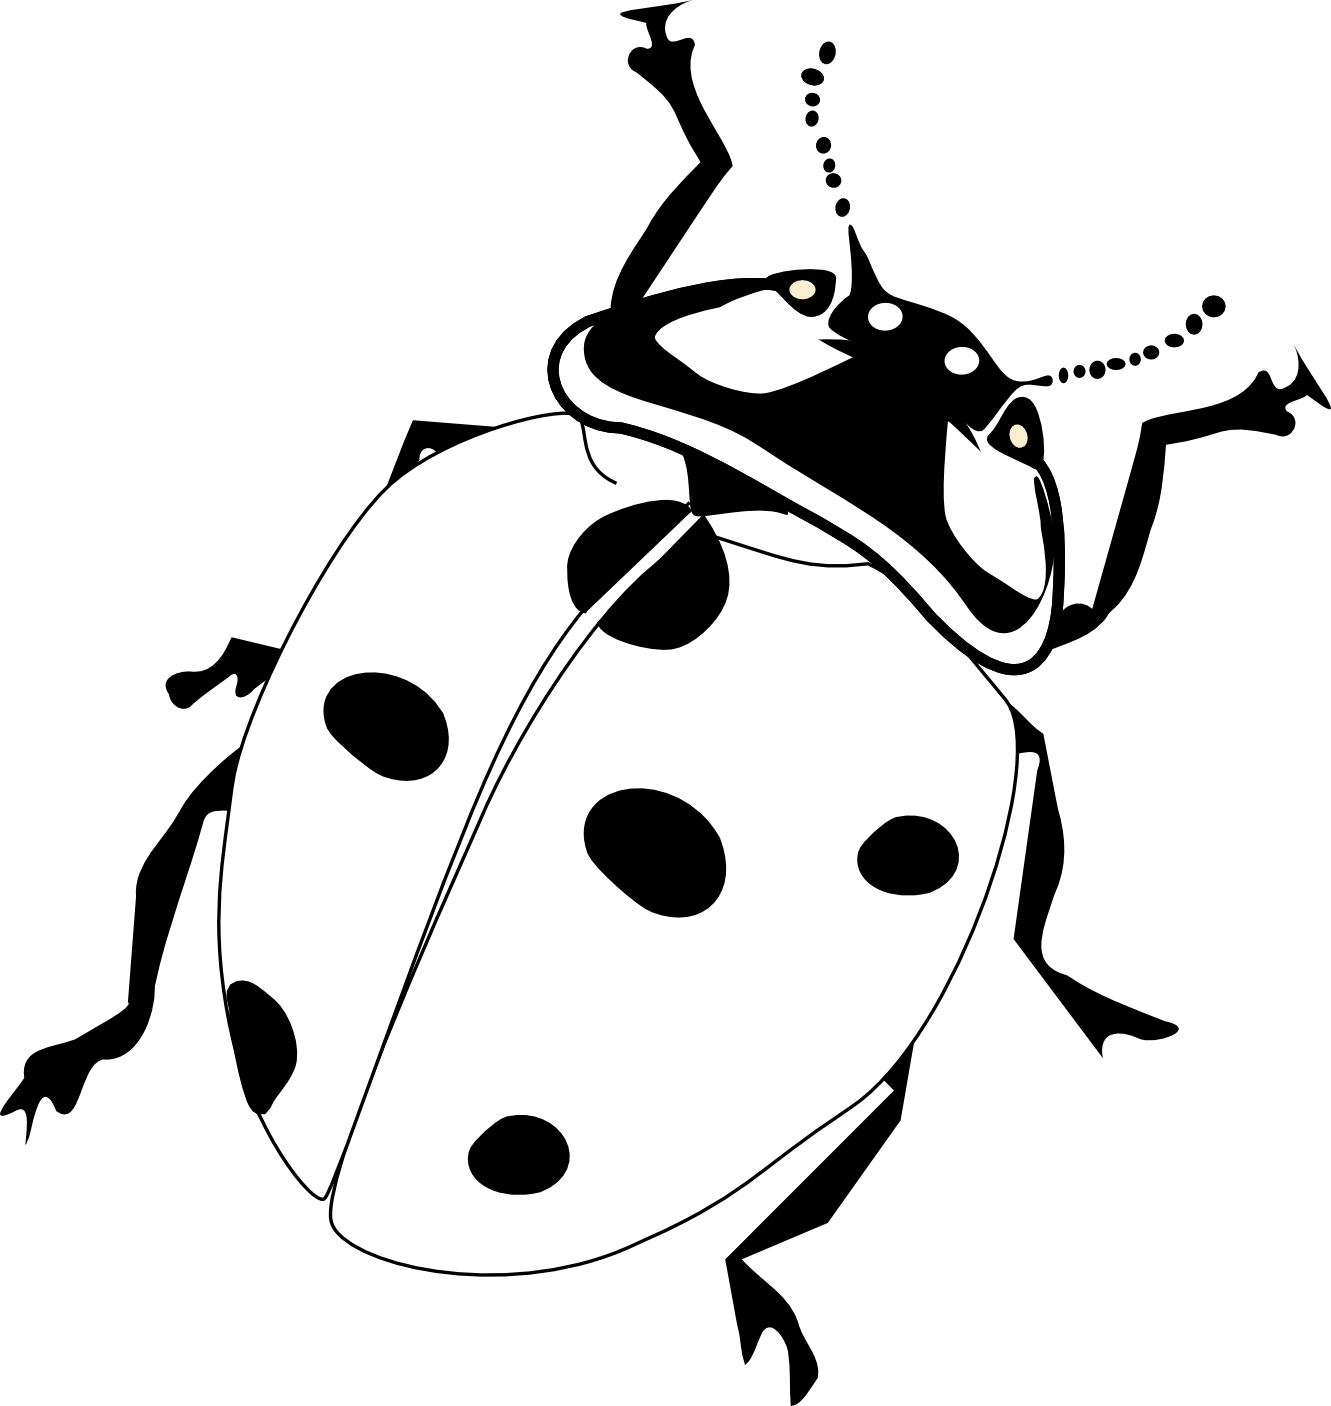 ladybug silhouette clipart panda free clipart images